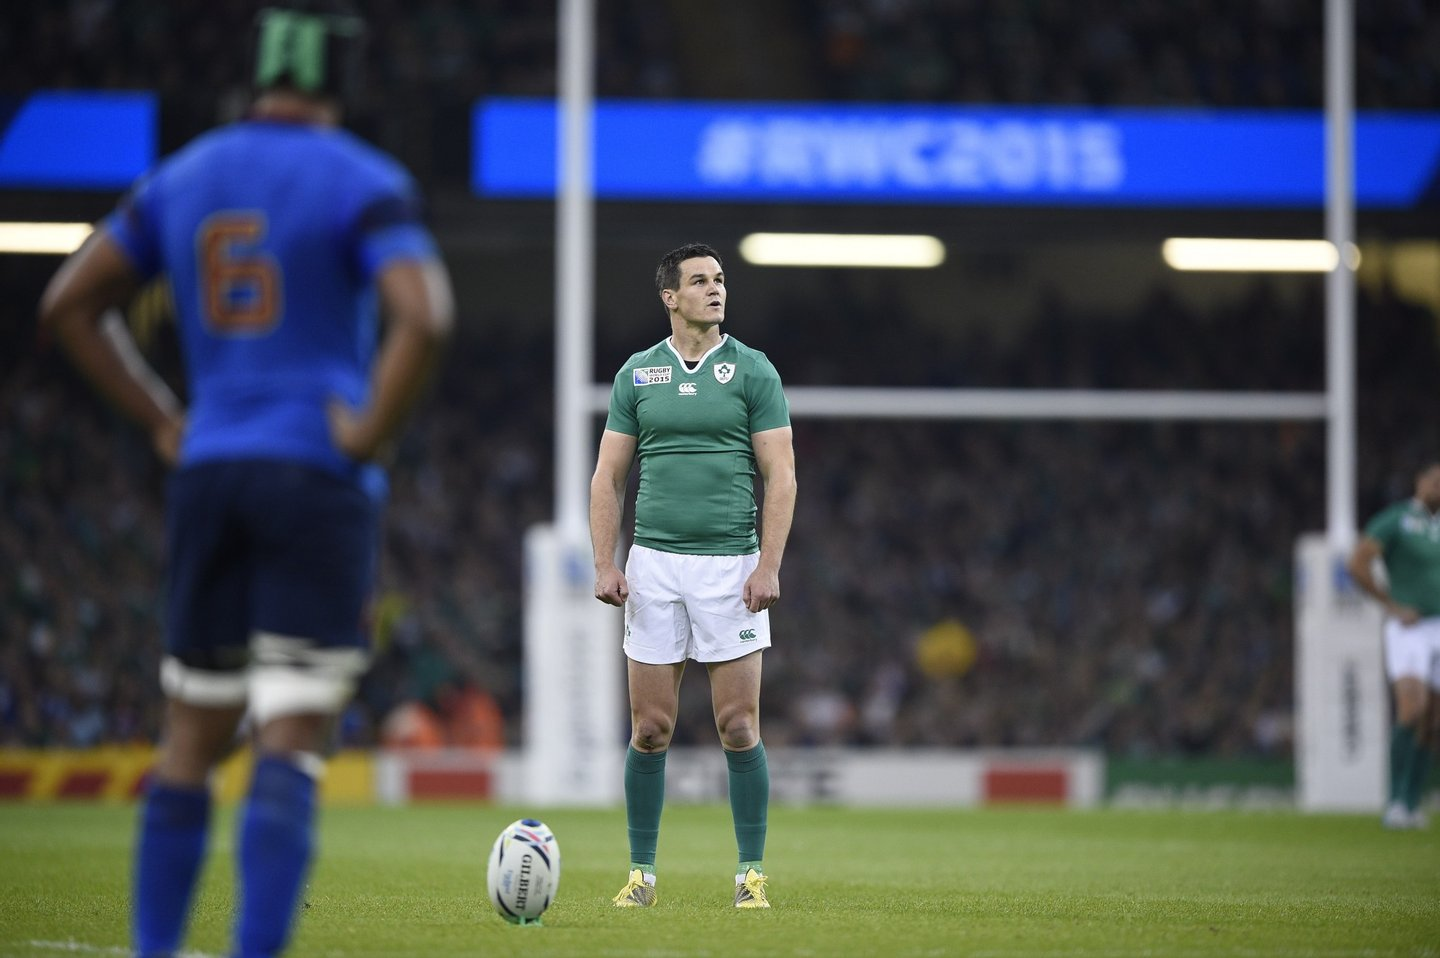 Ireland's fly half Jonathan Sexton prepares to kick a penalty during the Pool D match of the 2015 Rugby World Cup between France and Ireland at the Millennium Stadium in Cardiff, south Wales, on October 11, 2015. AFP PHOTO / DAMIEN MEYER RESTRICTED TO EDITORIAL USE, NO USE IN LIVE MATCH TRACKING SERVICES, TO BE USED AS NON-SEQUENTIAL STILLS (Photo credit should read DAMIEN MEYER/AFP/Getty Images)